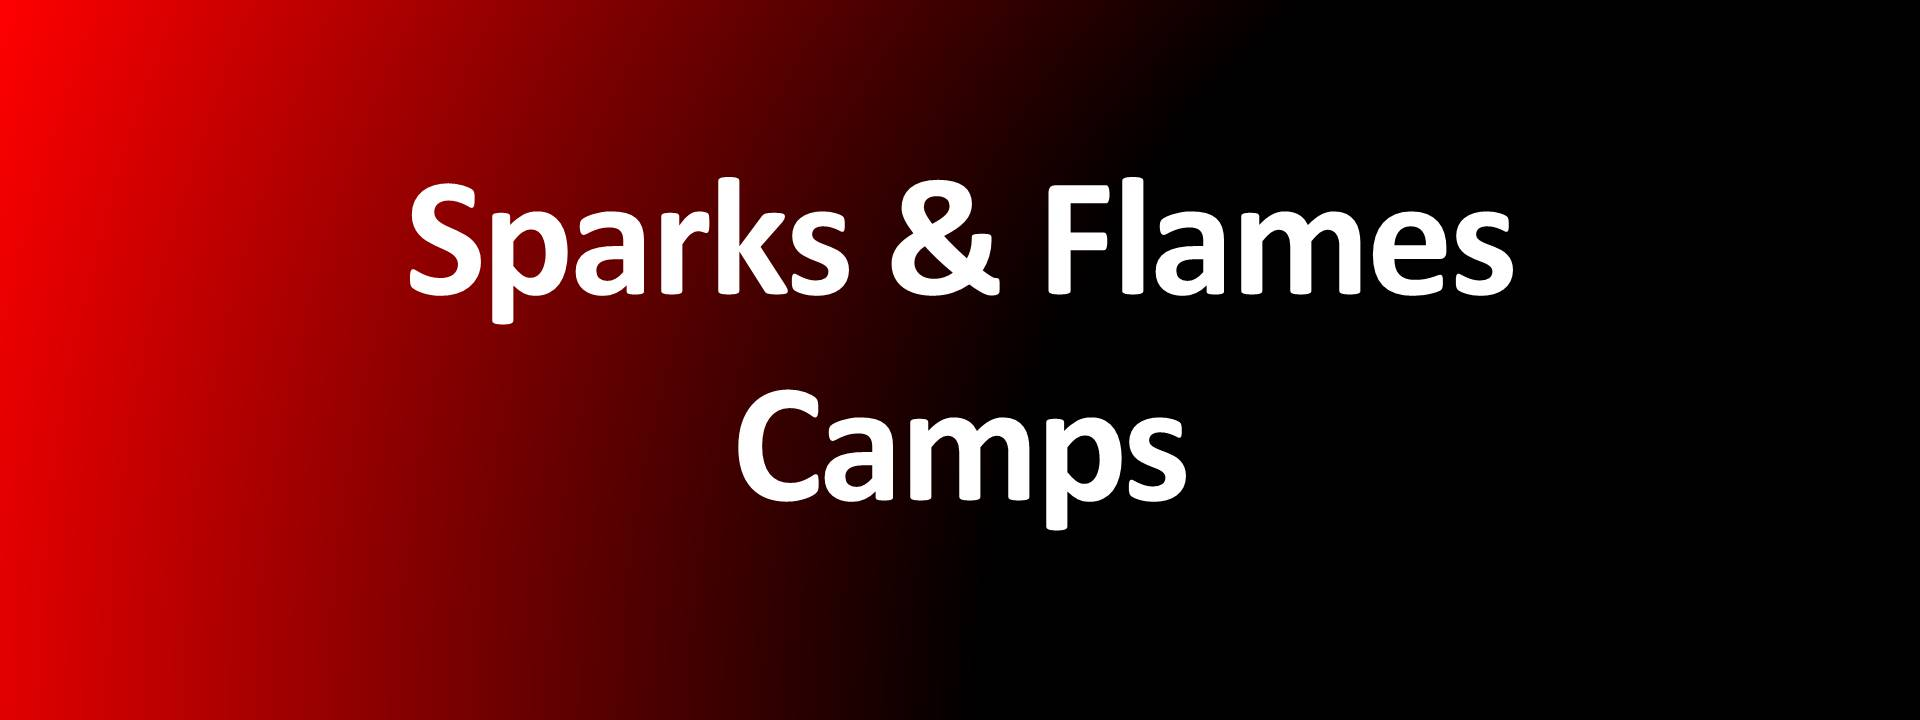 Sparks and Flames Camps